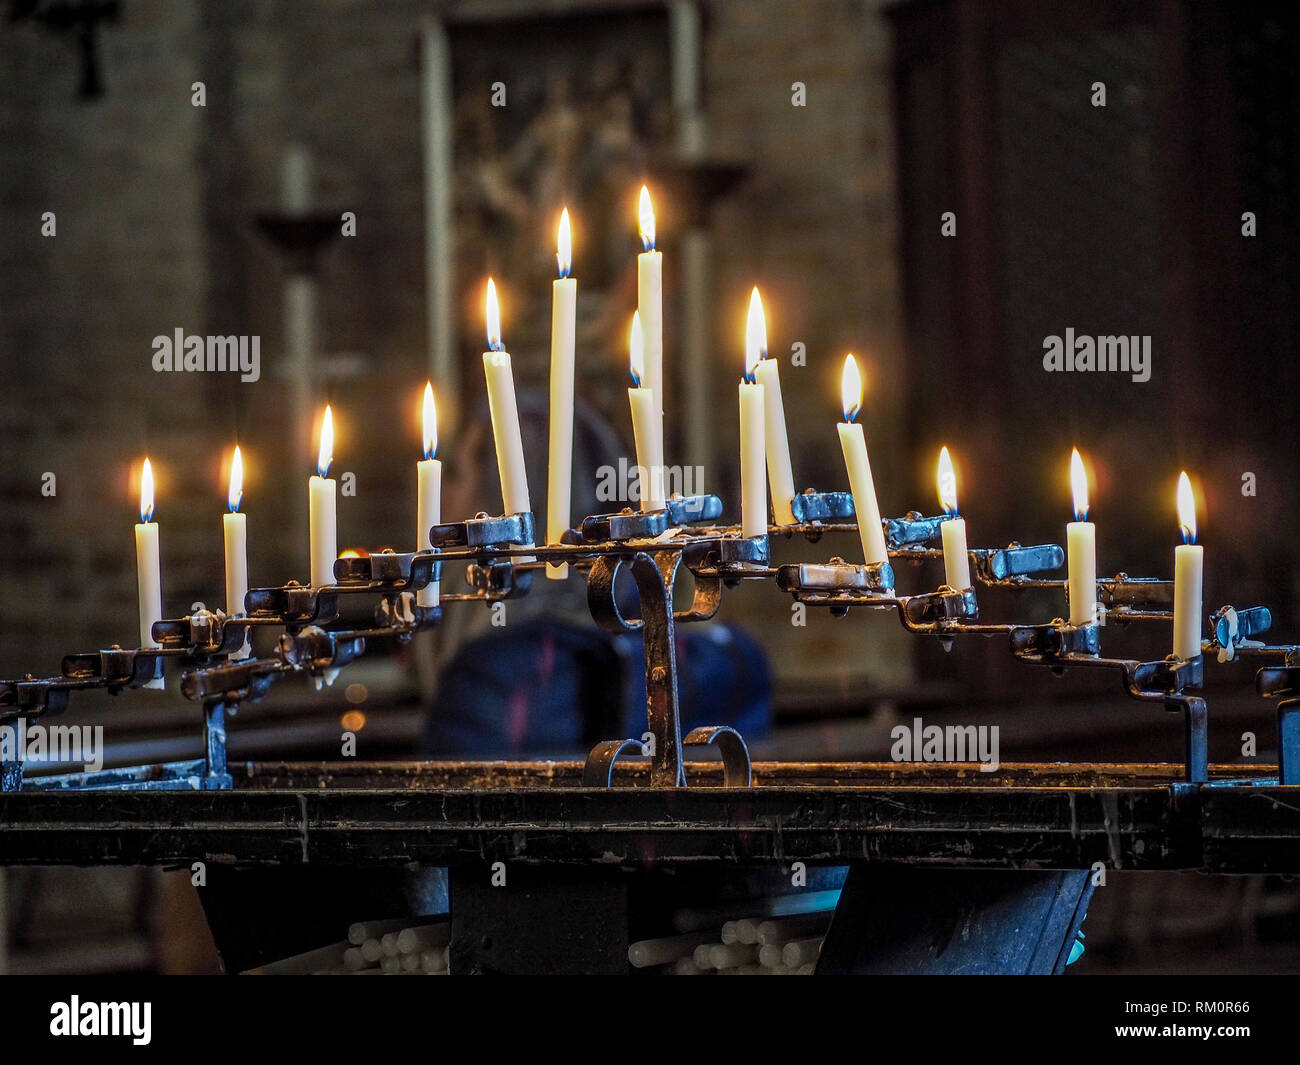 Candles glow warmly within the Cathedral of Santa Fosca on the Venetian island of Torcello. - Stock Image